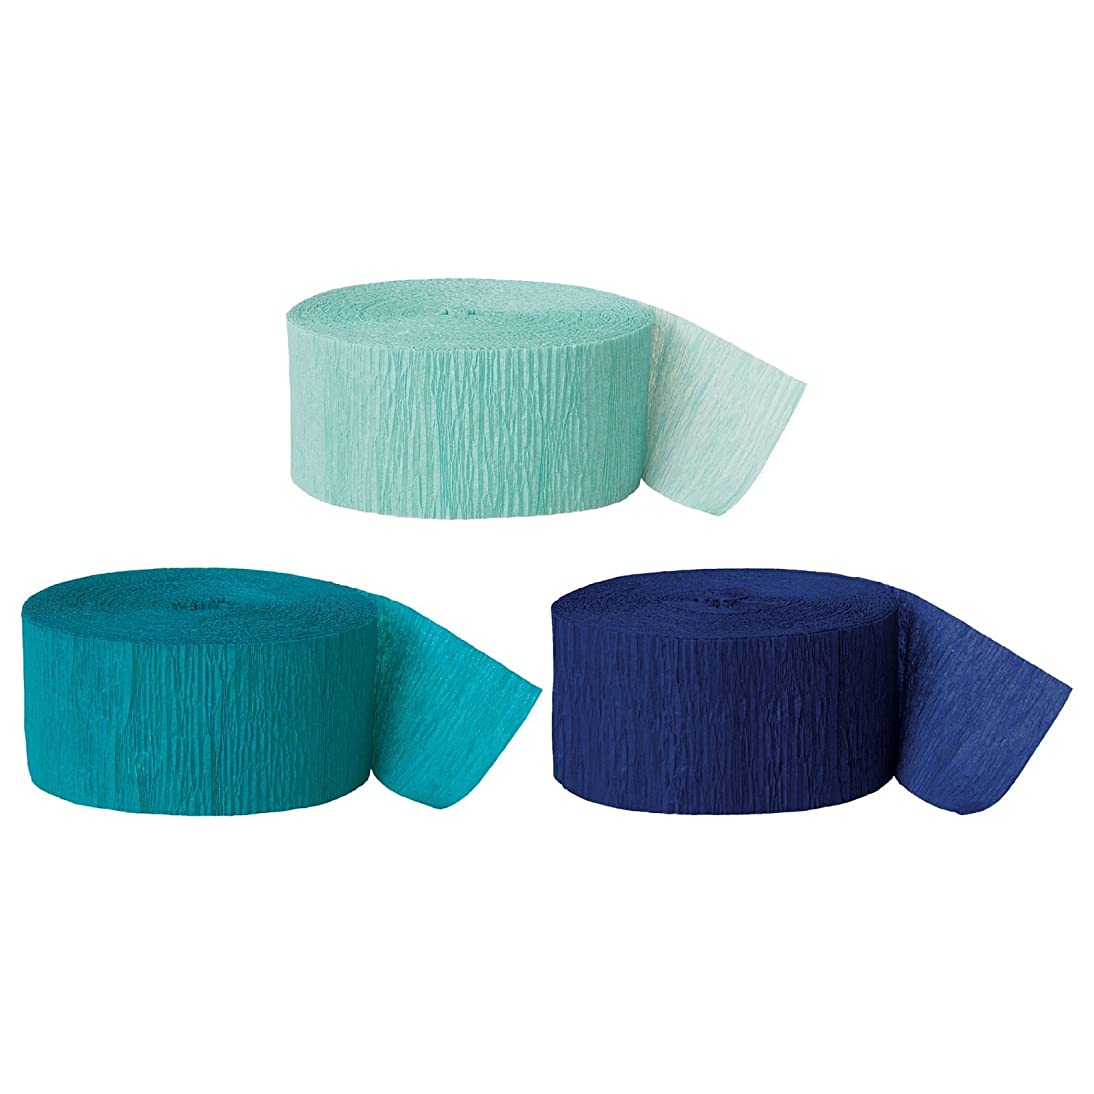 Andaz Press Crepe Paper Streamer Hanging Party Decorations Kit, 240-Feet, Diamond Blue Mint, Aqua Teal, Navy Blue, 1-Pack, 3-Rolls, Mermaid Colored Wedding Baby Bridal Shower Birthday Supplies